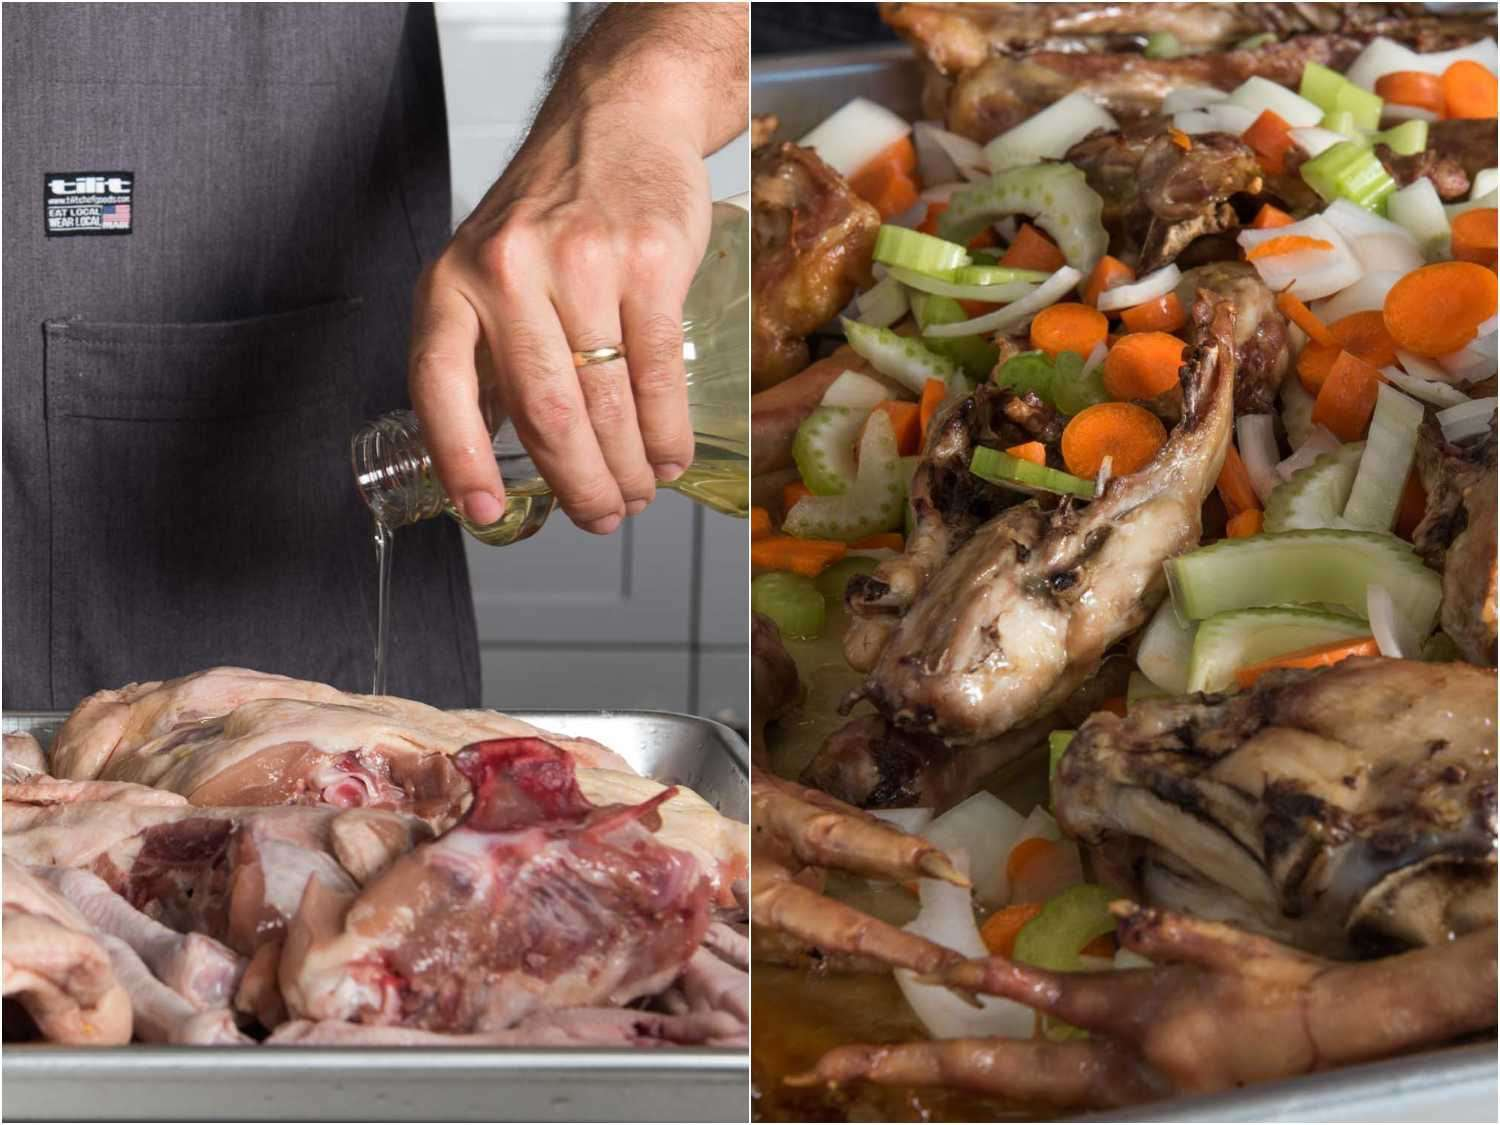 Oiling chicken bones and vegetables for roasting to make brown chicken stock